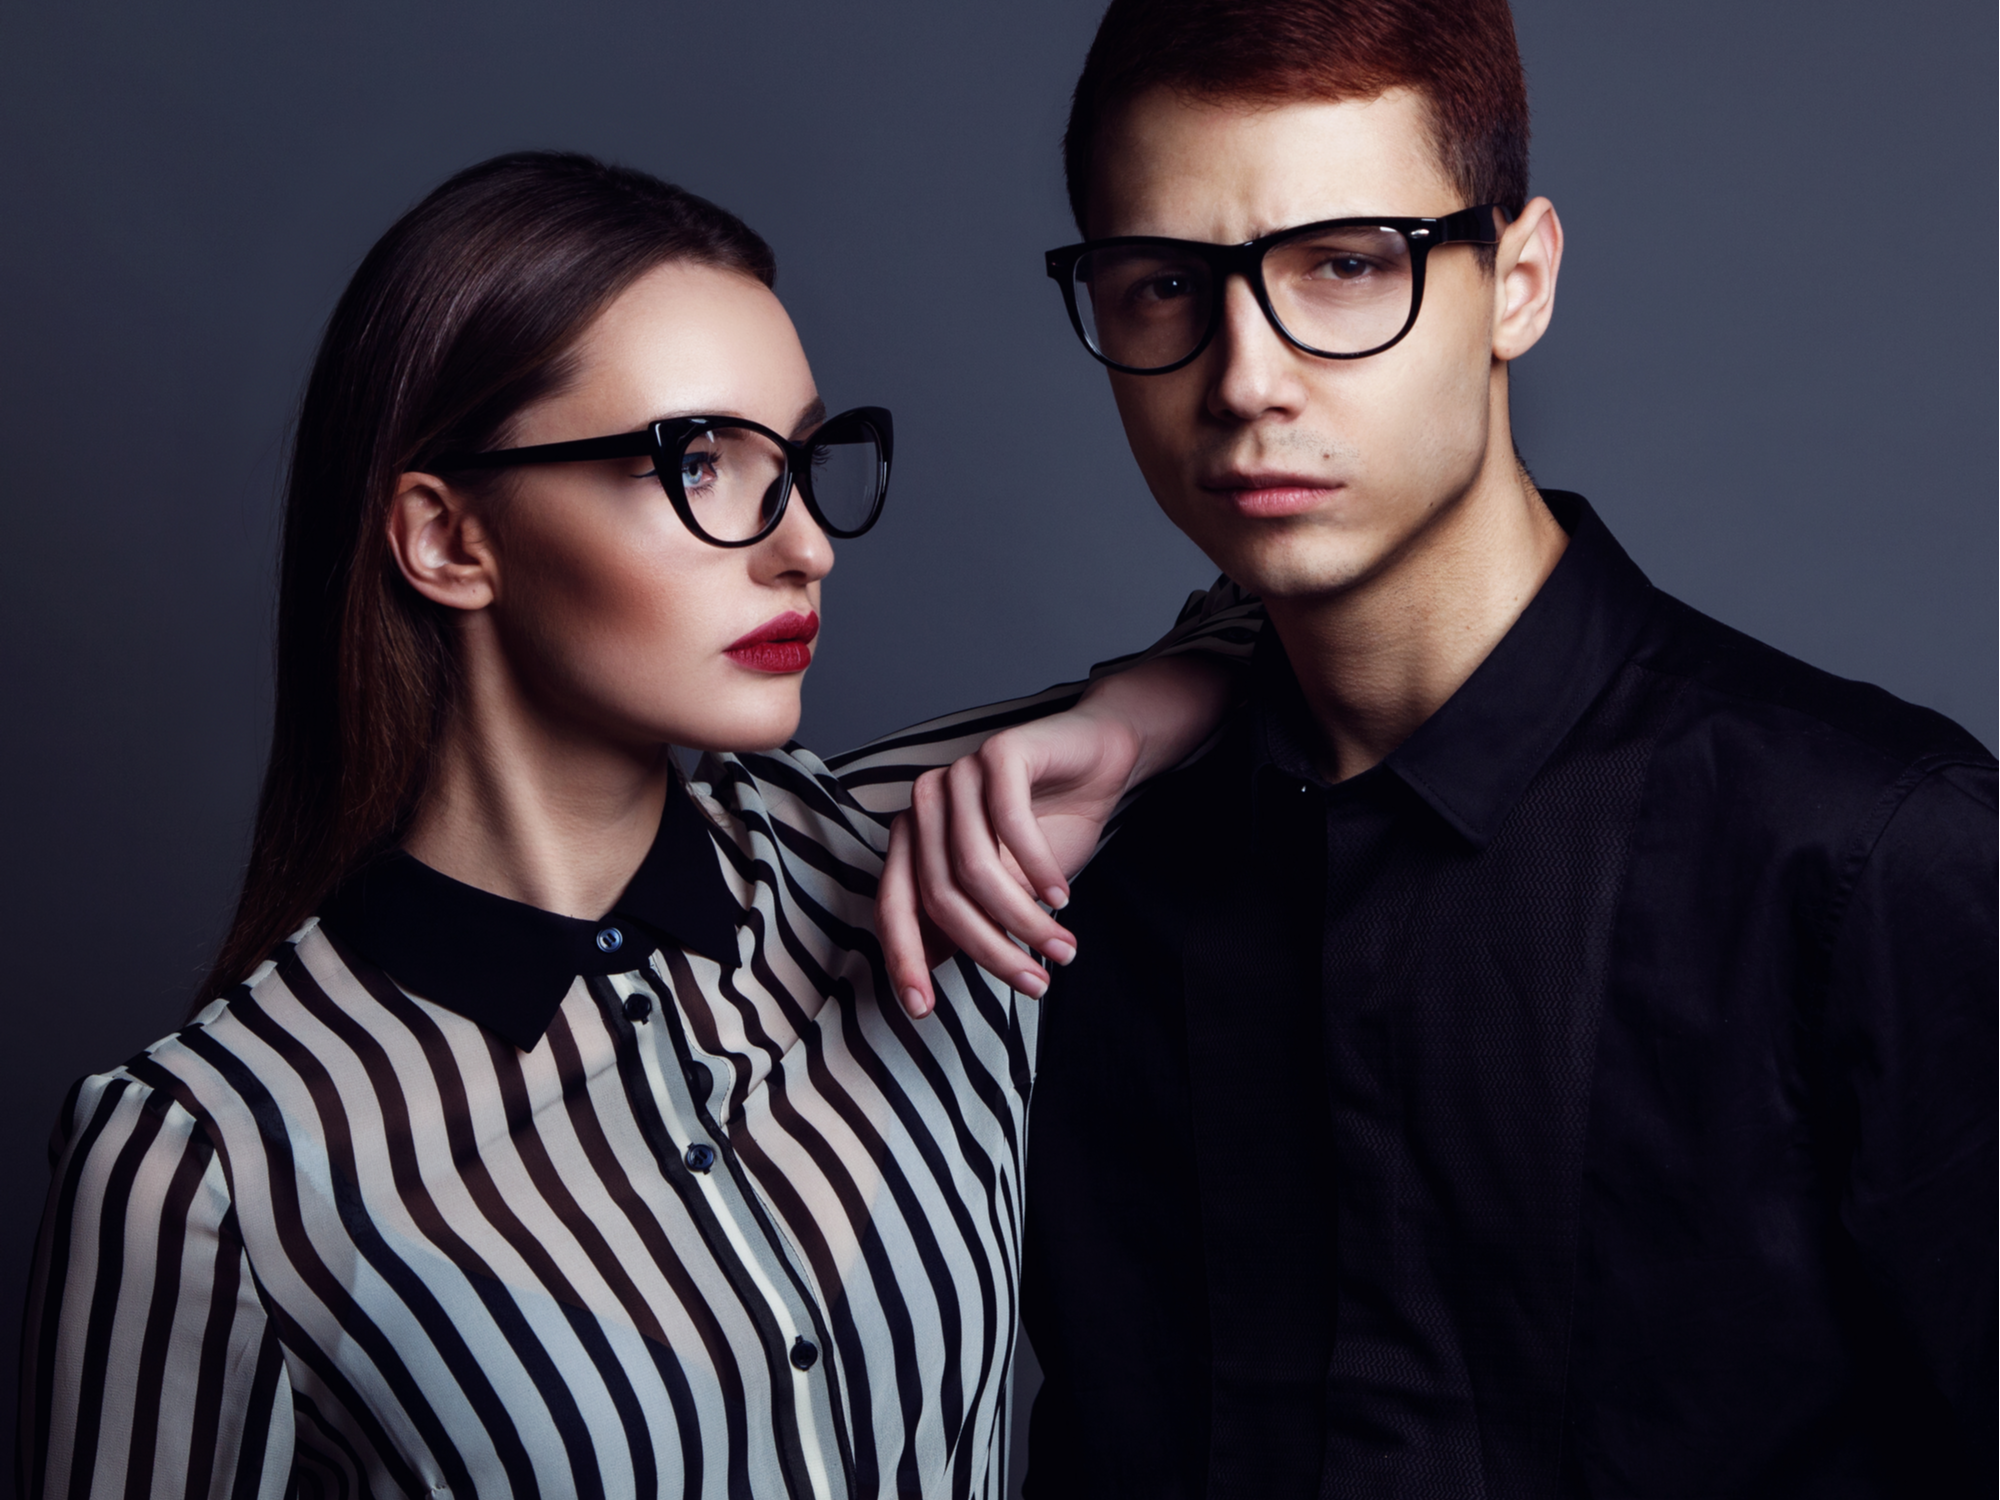 The Latest Eyewear Trends in 2021